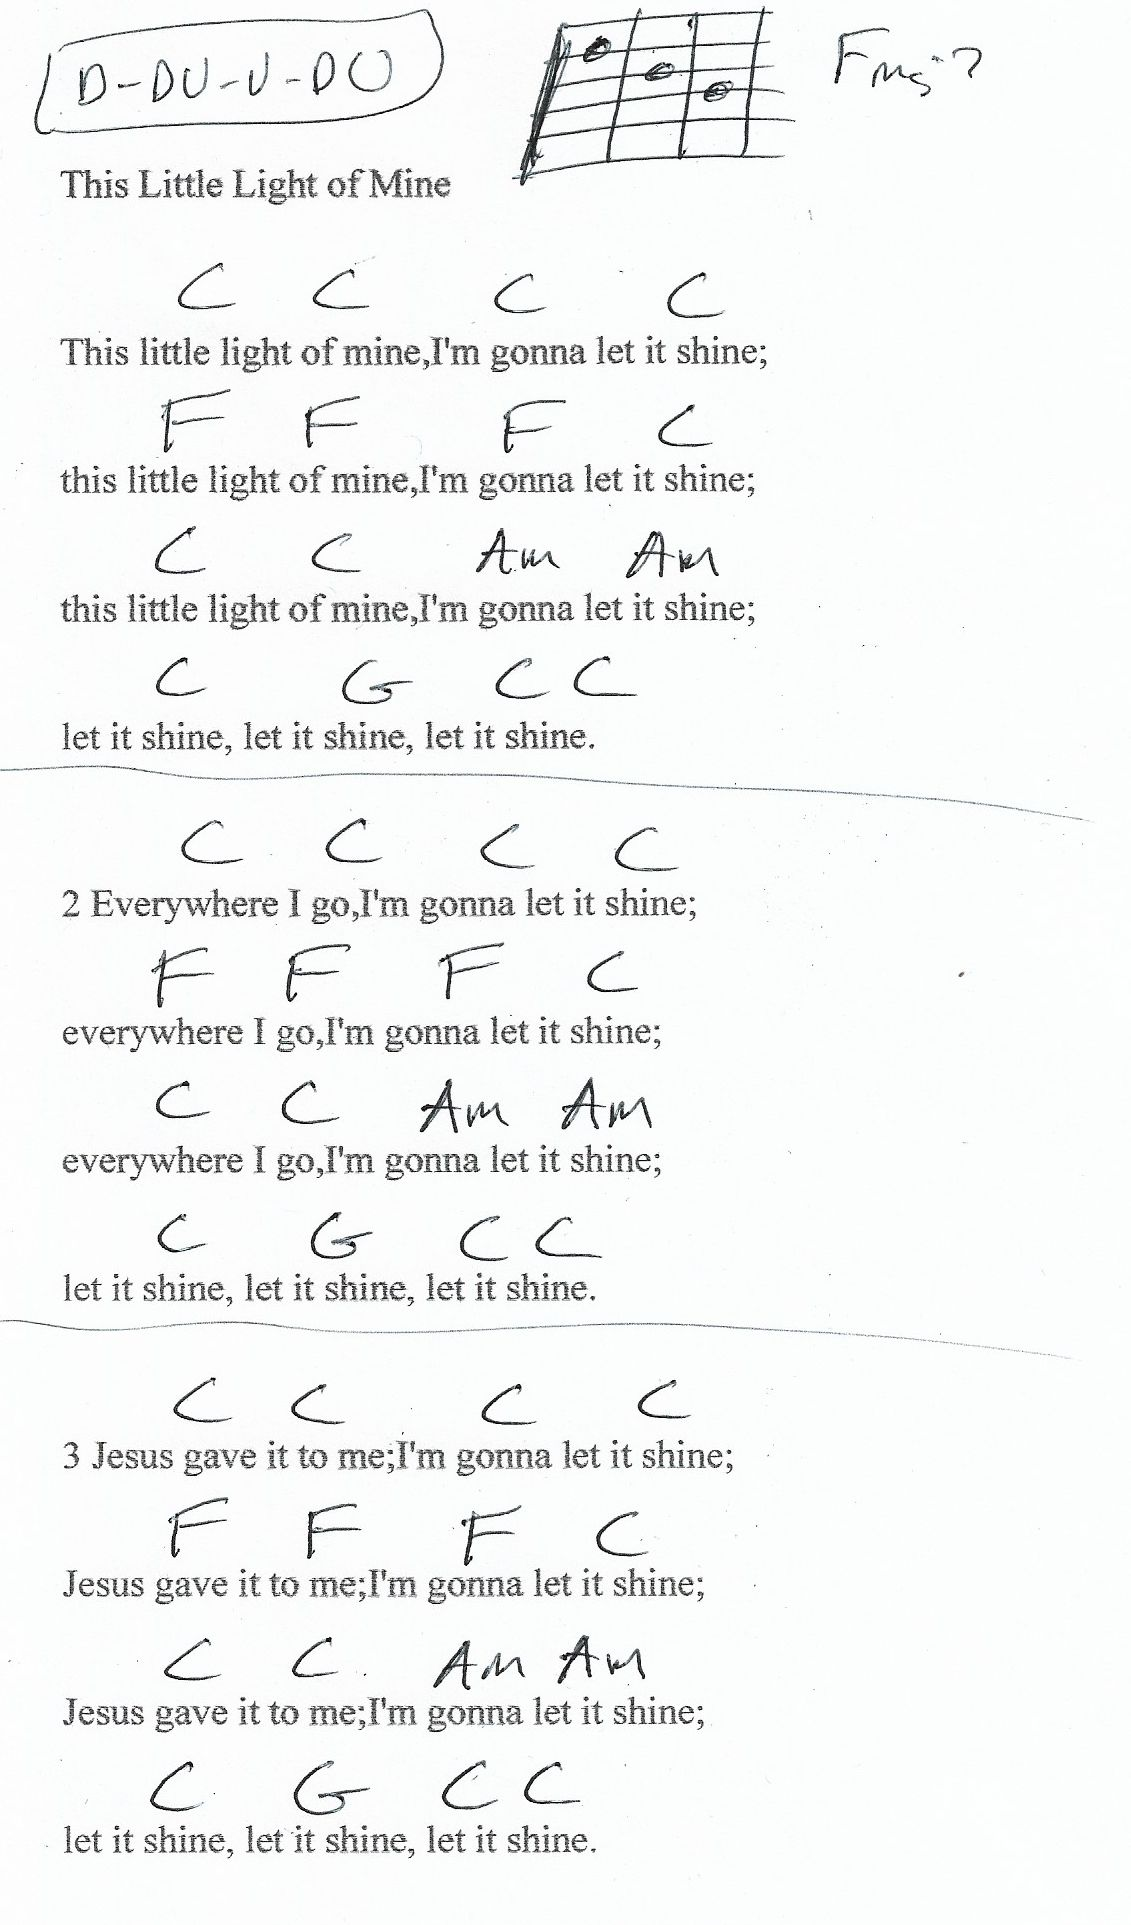 This Little Light Of Mine Guitar Chord Chart In C Major Ukulele Music Guitar Chord Chart Ukelele Chords